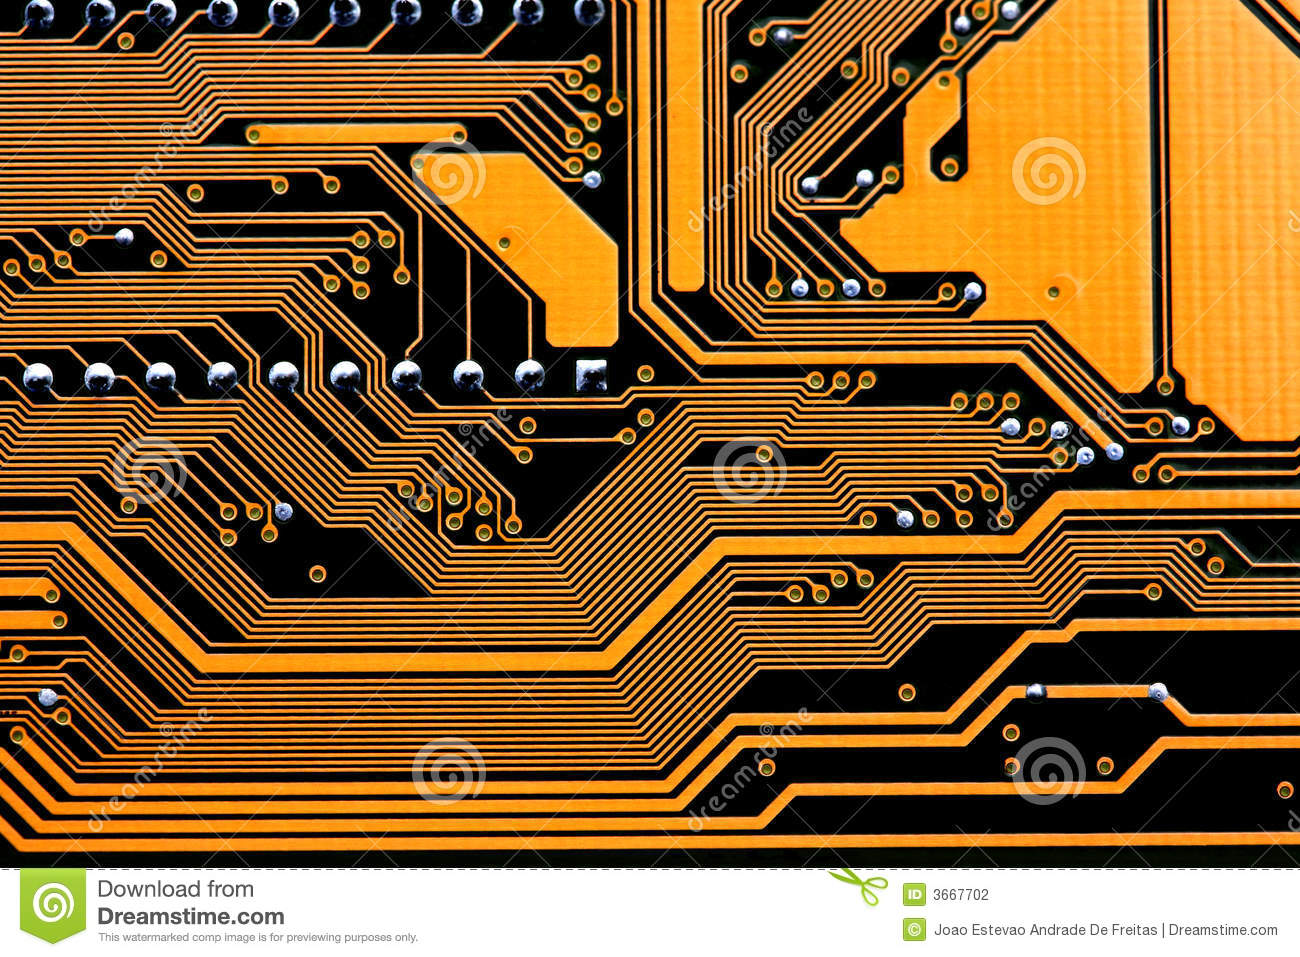 circuits of a computer motherboard stock photo image of bugs rh dreamstime com Static Electricity Open Circuit